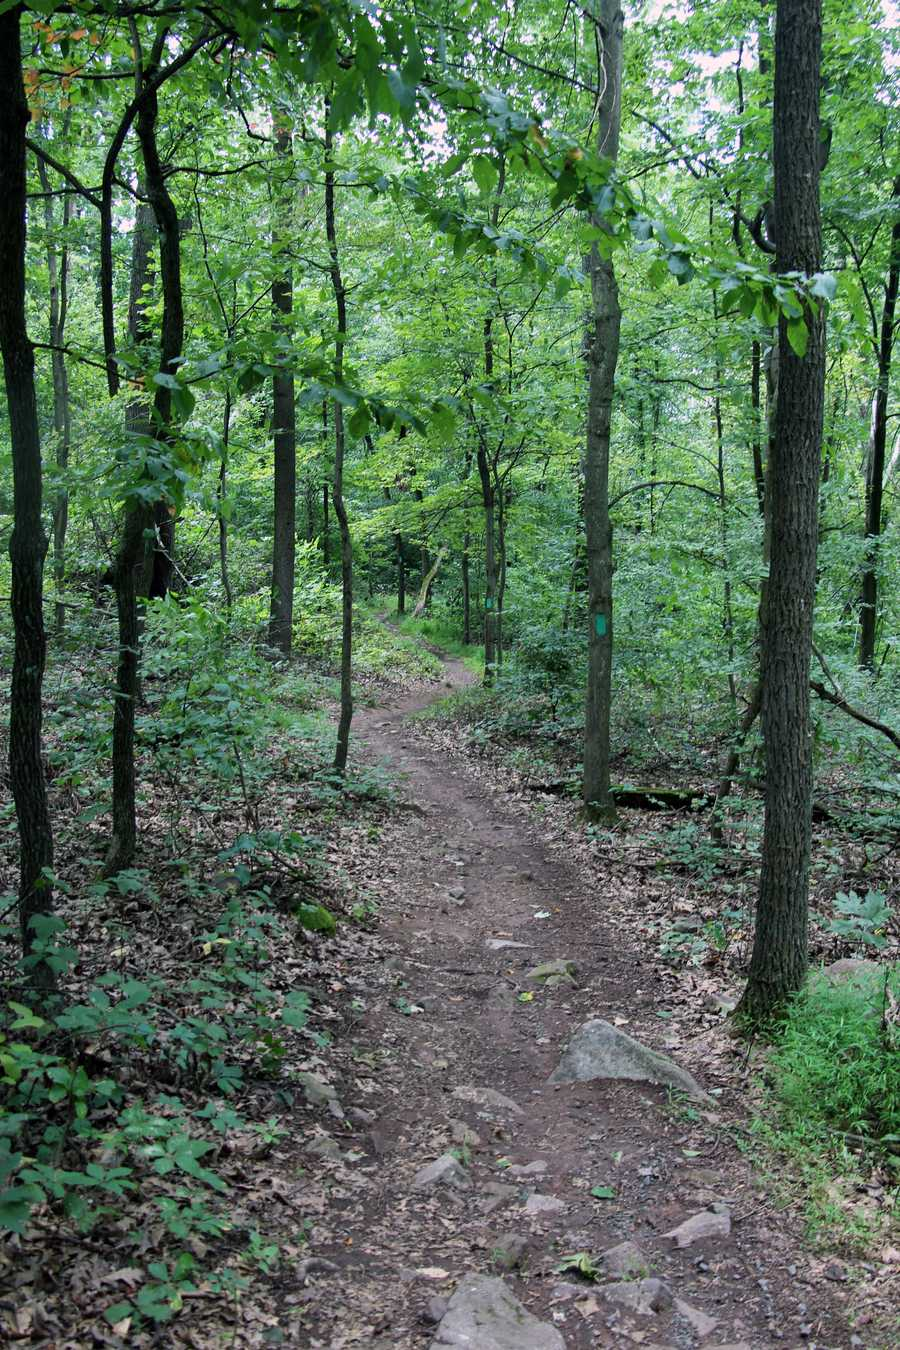 Begin this hike from the campground contact station, Scotts Run Lake, Hopewell Furnace Visitor Center, or Route 345/Shed Road.